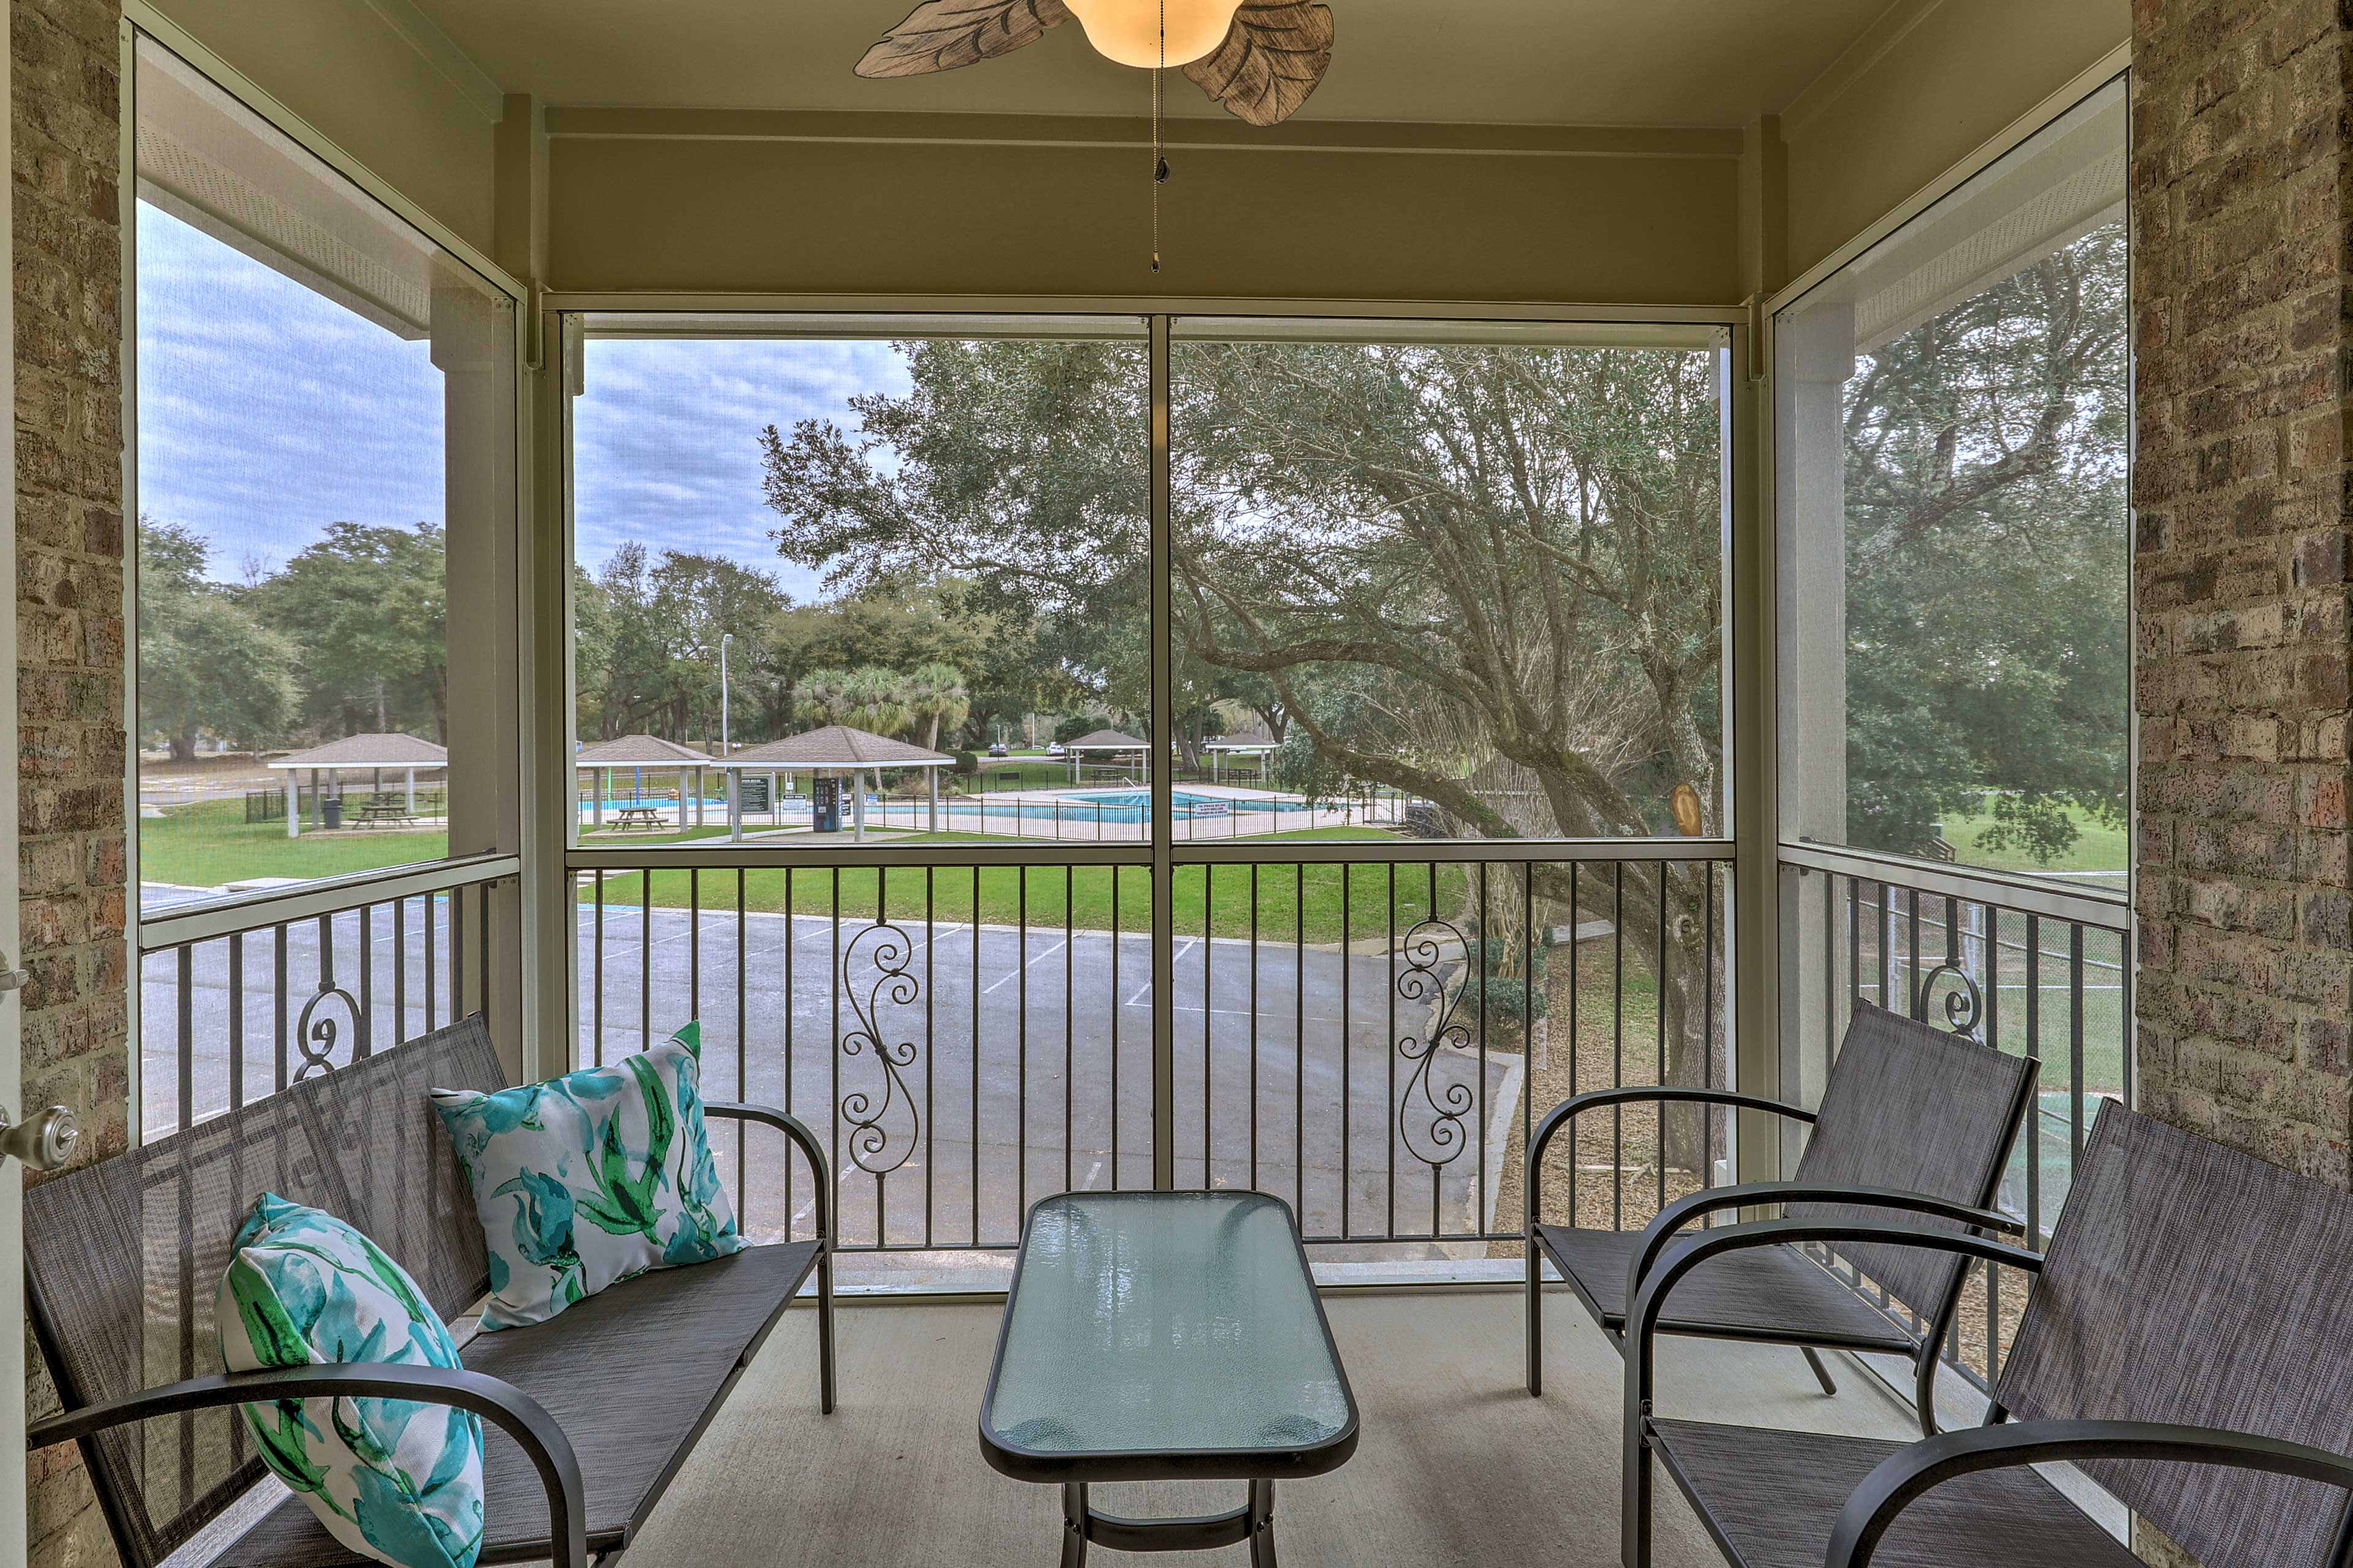 This vacation rental boasts a screened-in patio overlooking the pool area!